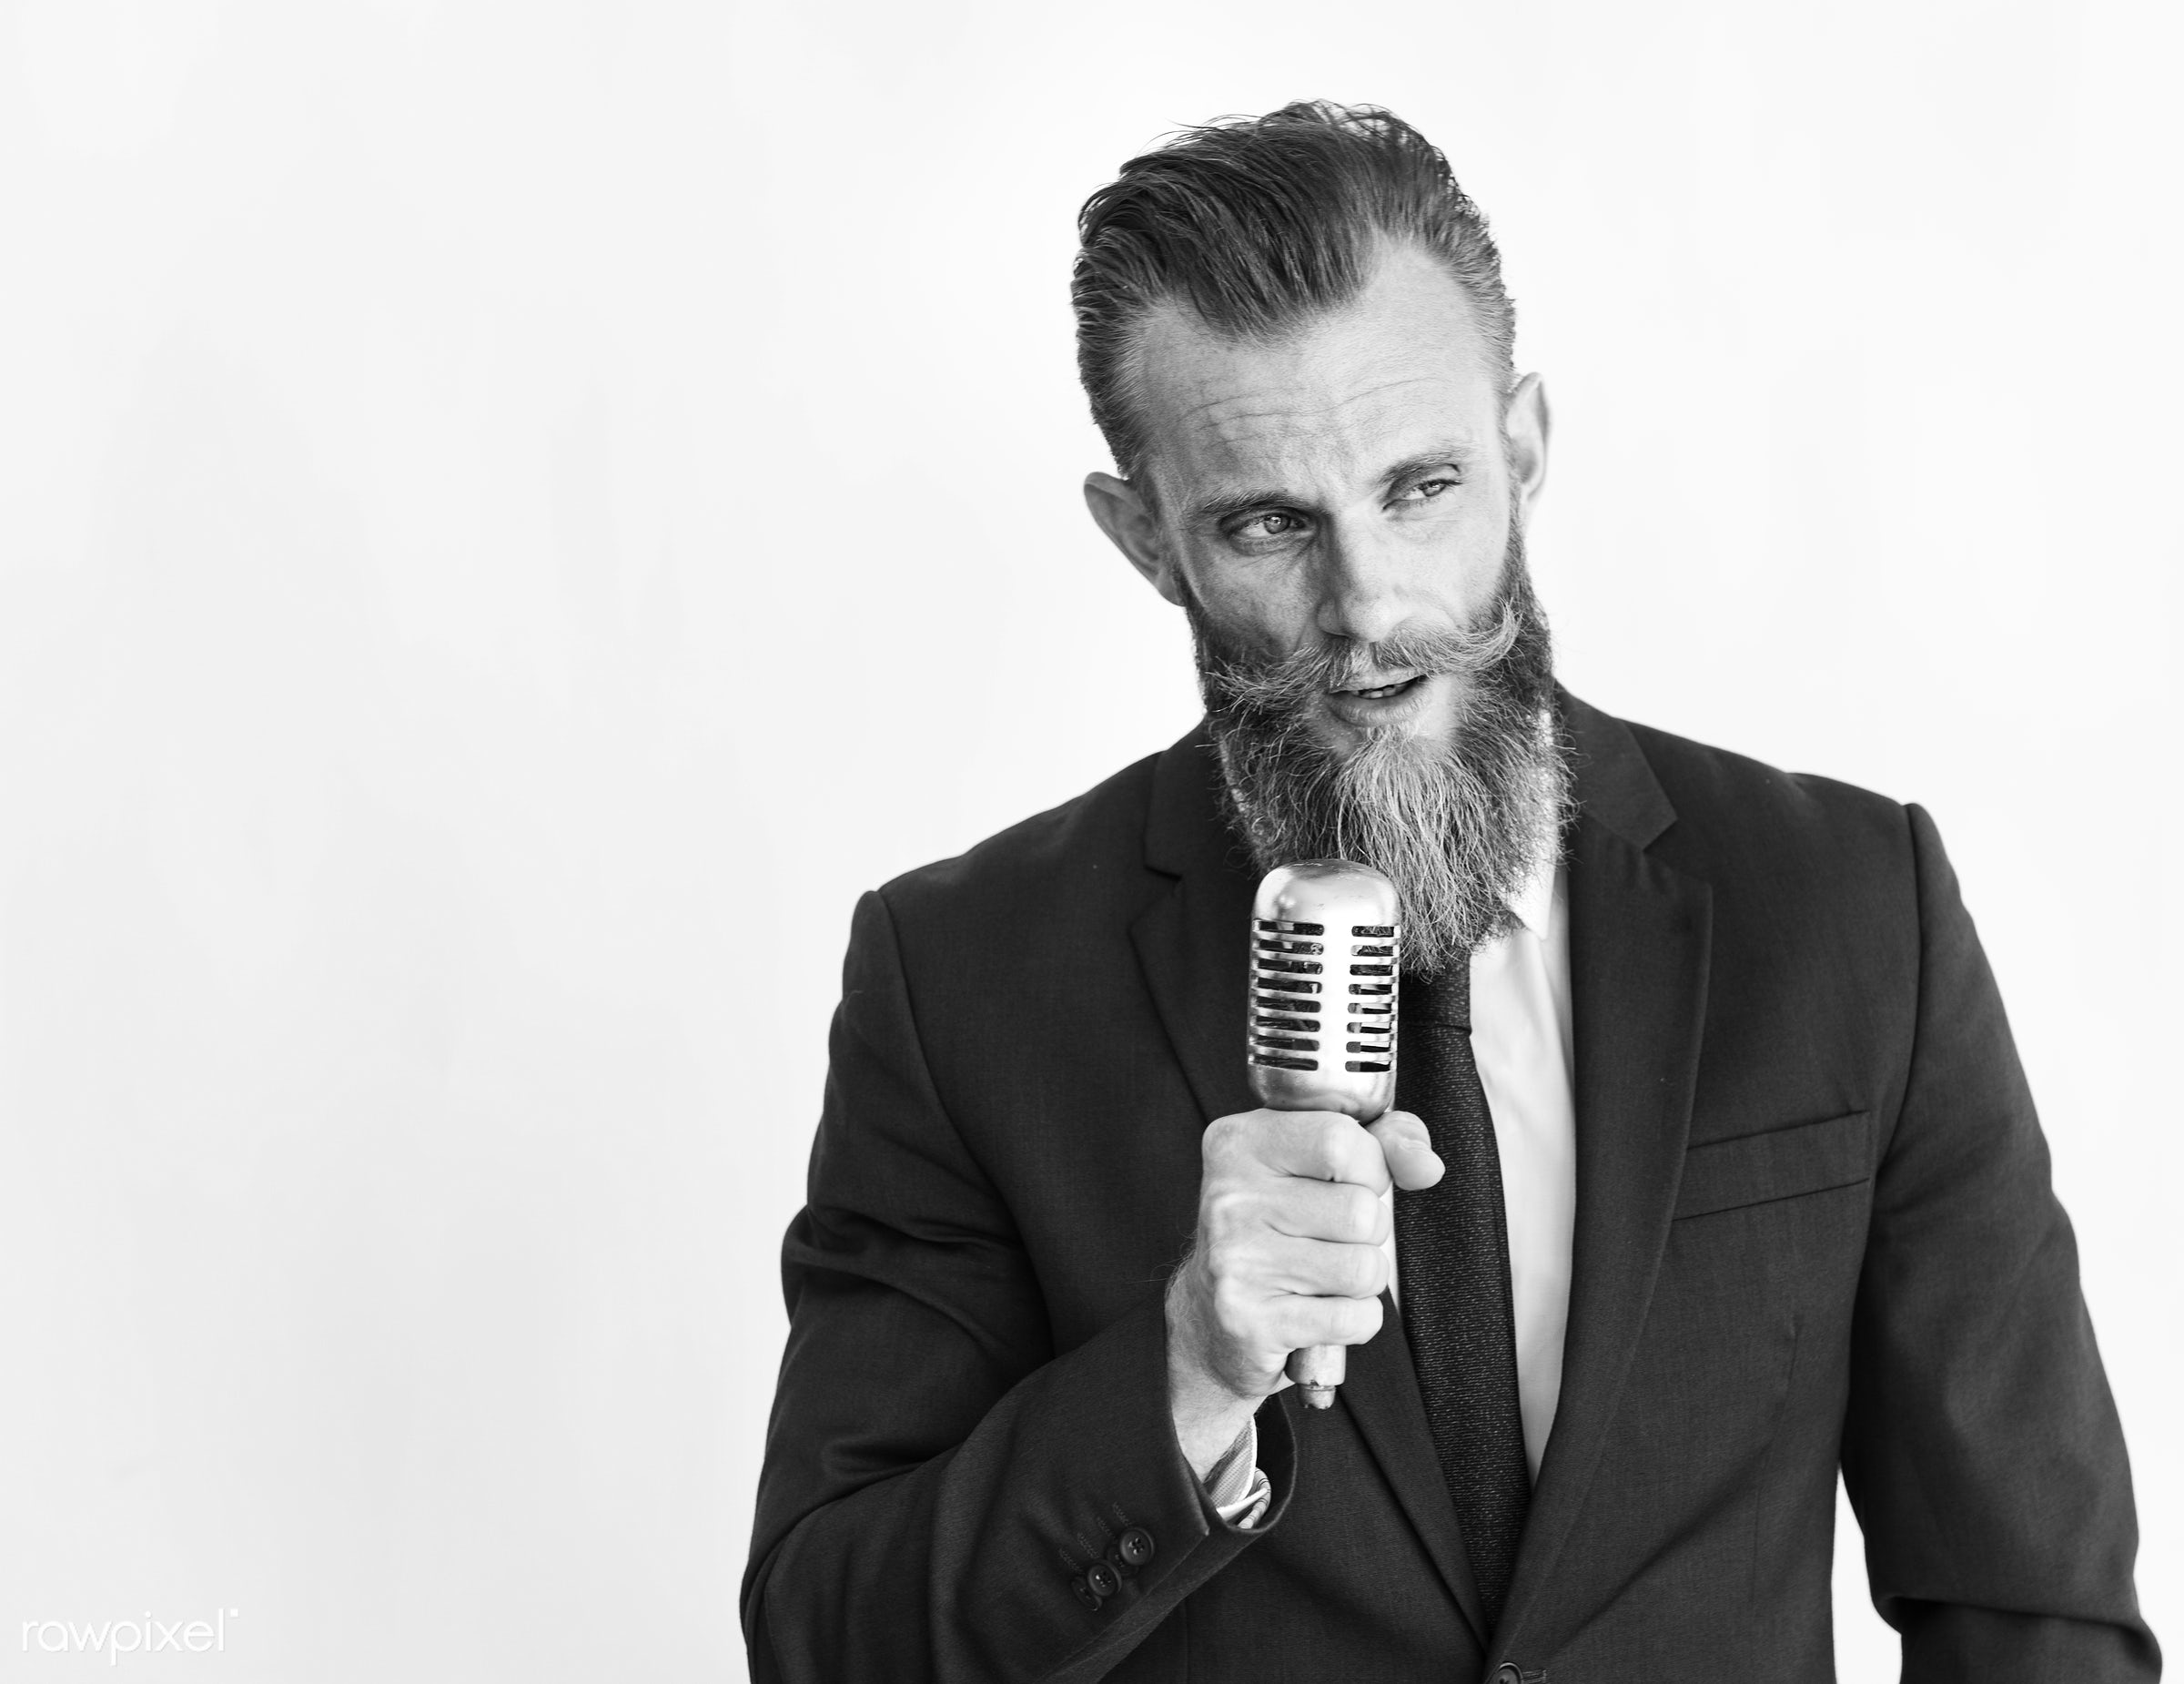 Business man talking on microphone grayscale - beard, speaking, mustache, alone, black and white, business, closeup, formal...